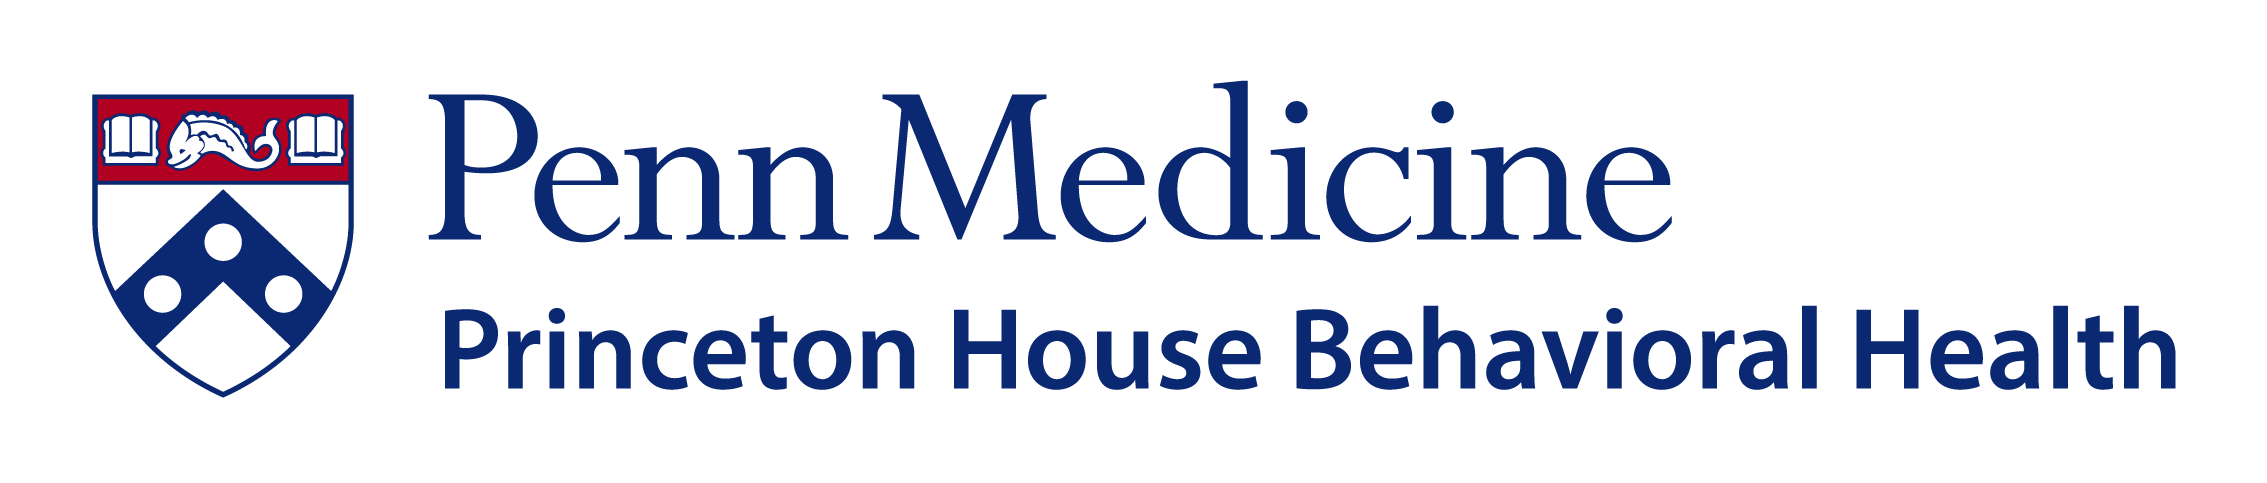 OUTPATIENT Medical Director - Eatontown, NJ - Penn Medicine Princeton House Behavioral Health